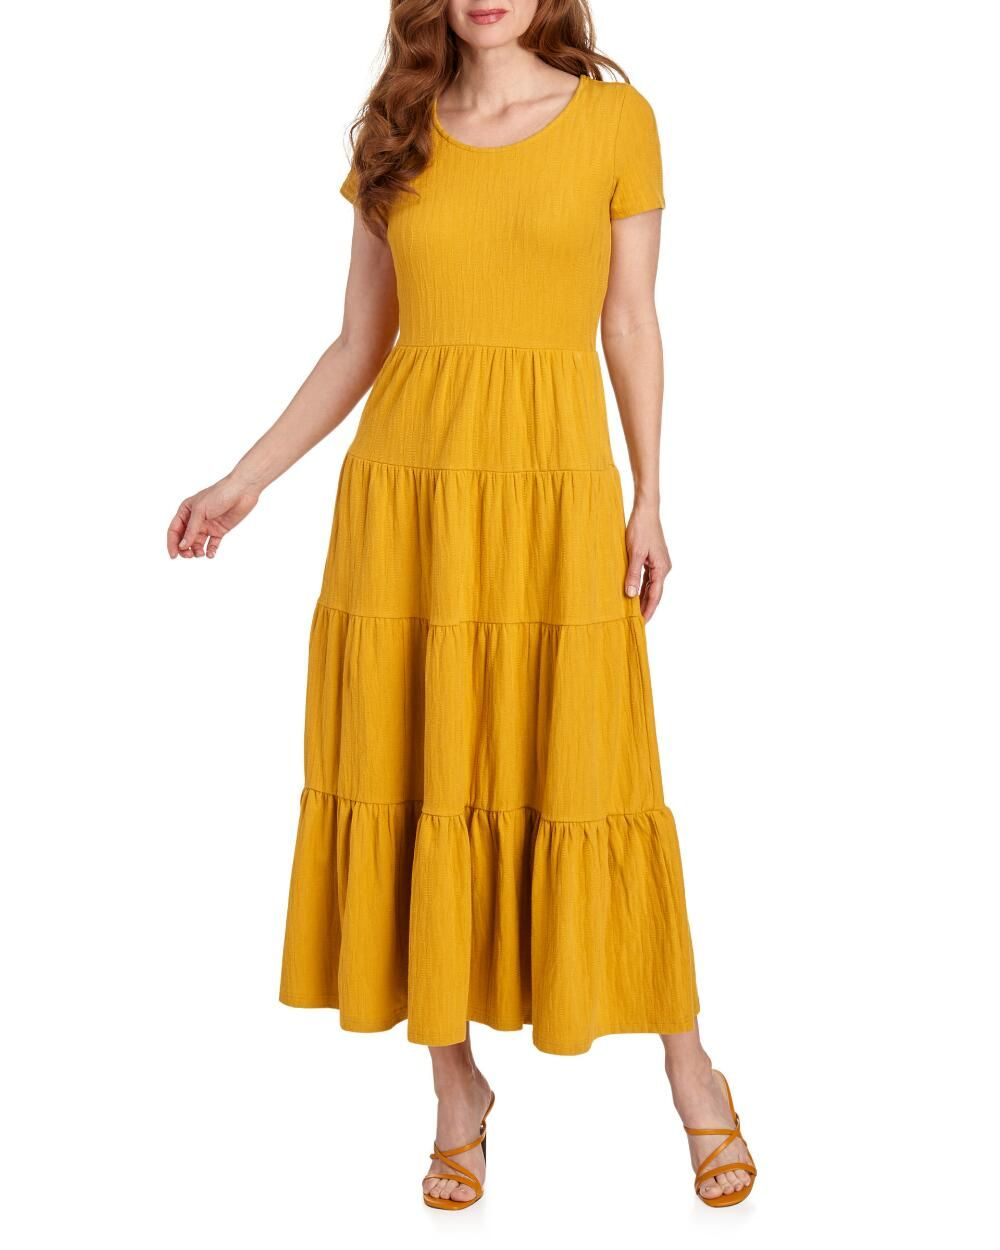 Chelsea Theodore Tiered Maxi T Shirt Dress Dresses Cool Outfits Short Sleeve Dresses [ 1250 x 1000 Pixel ]